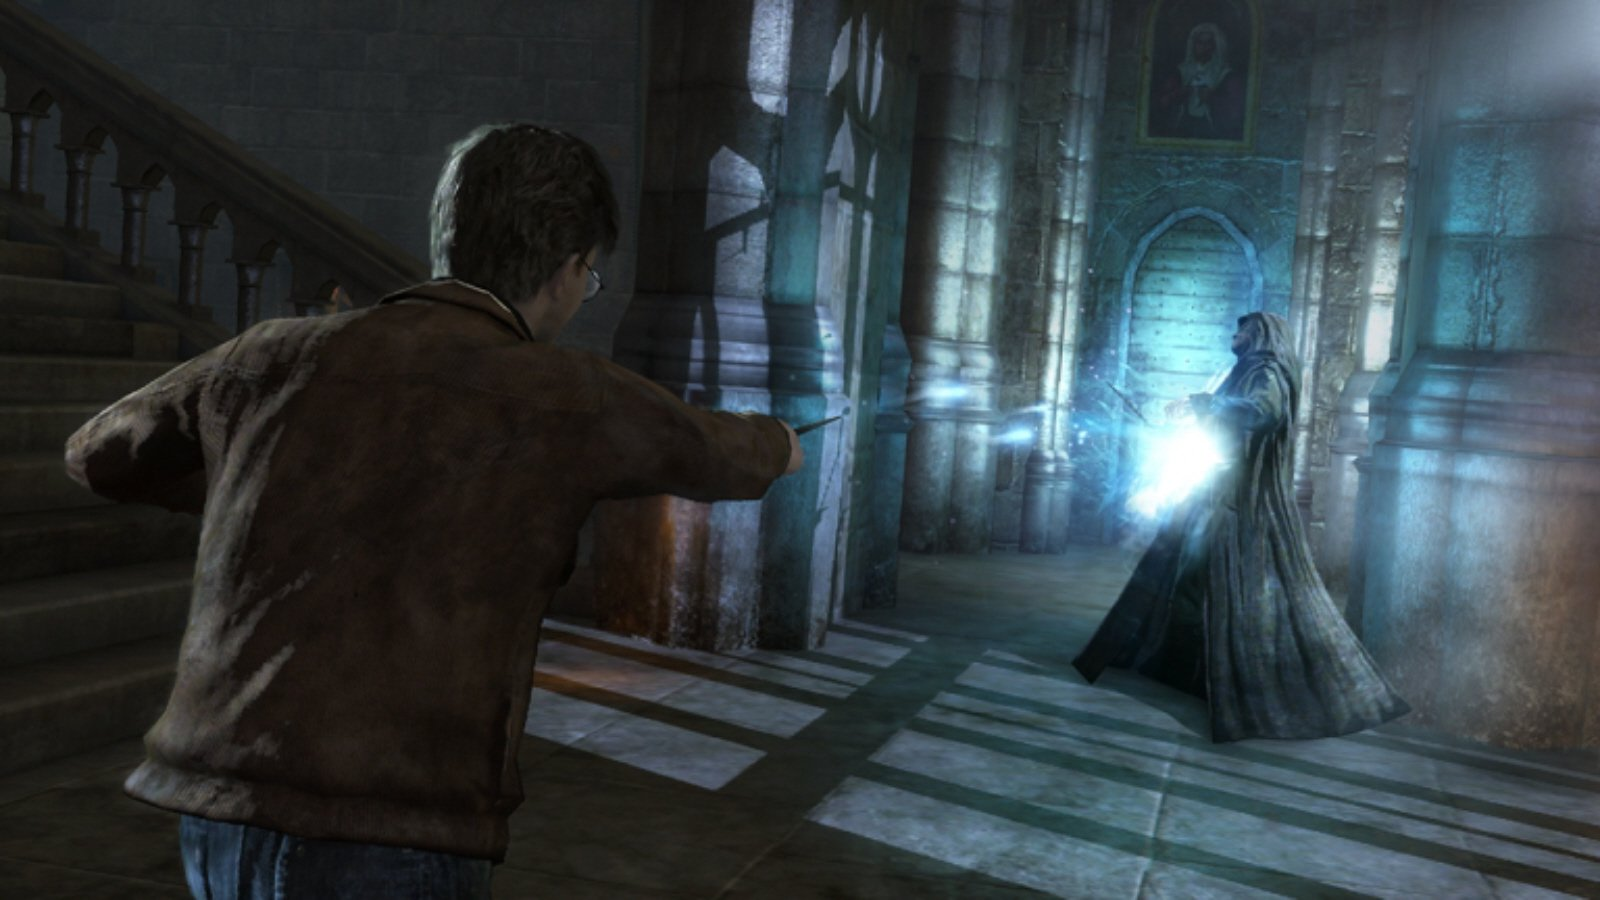 Harry Potter and The Deathly Hallows Part 2 Wizard Fight